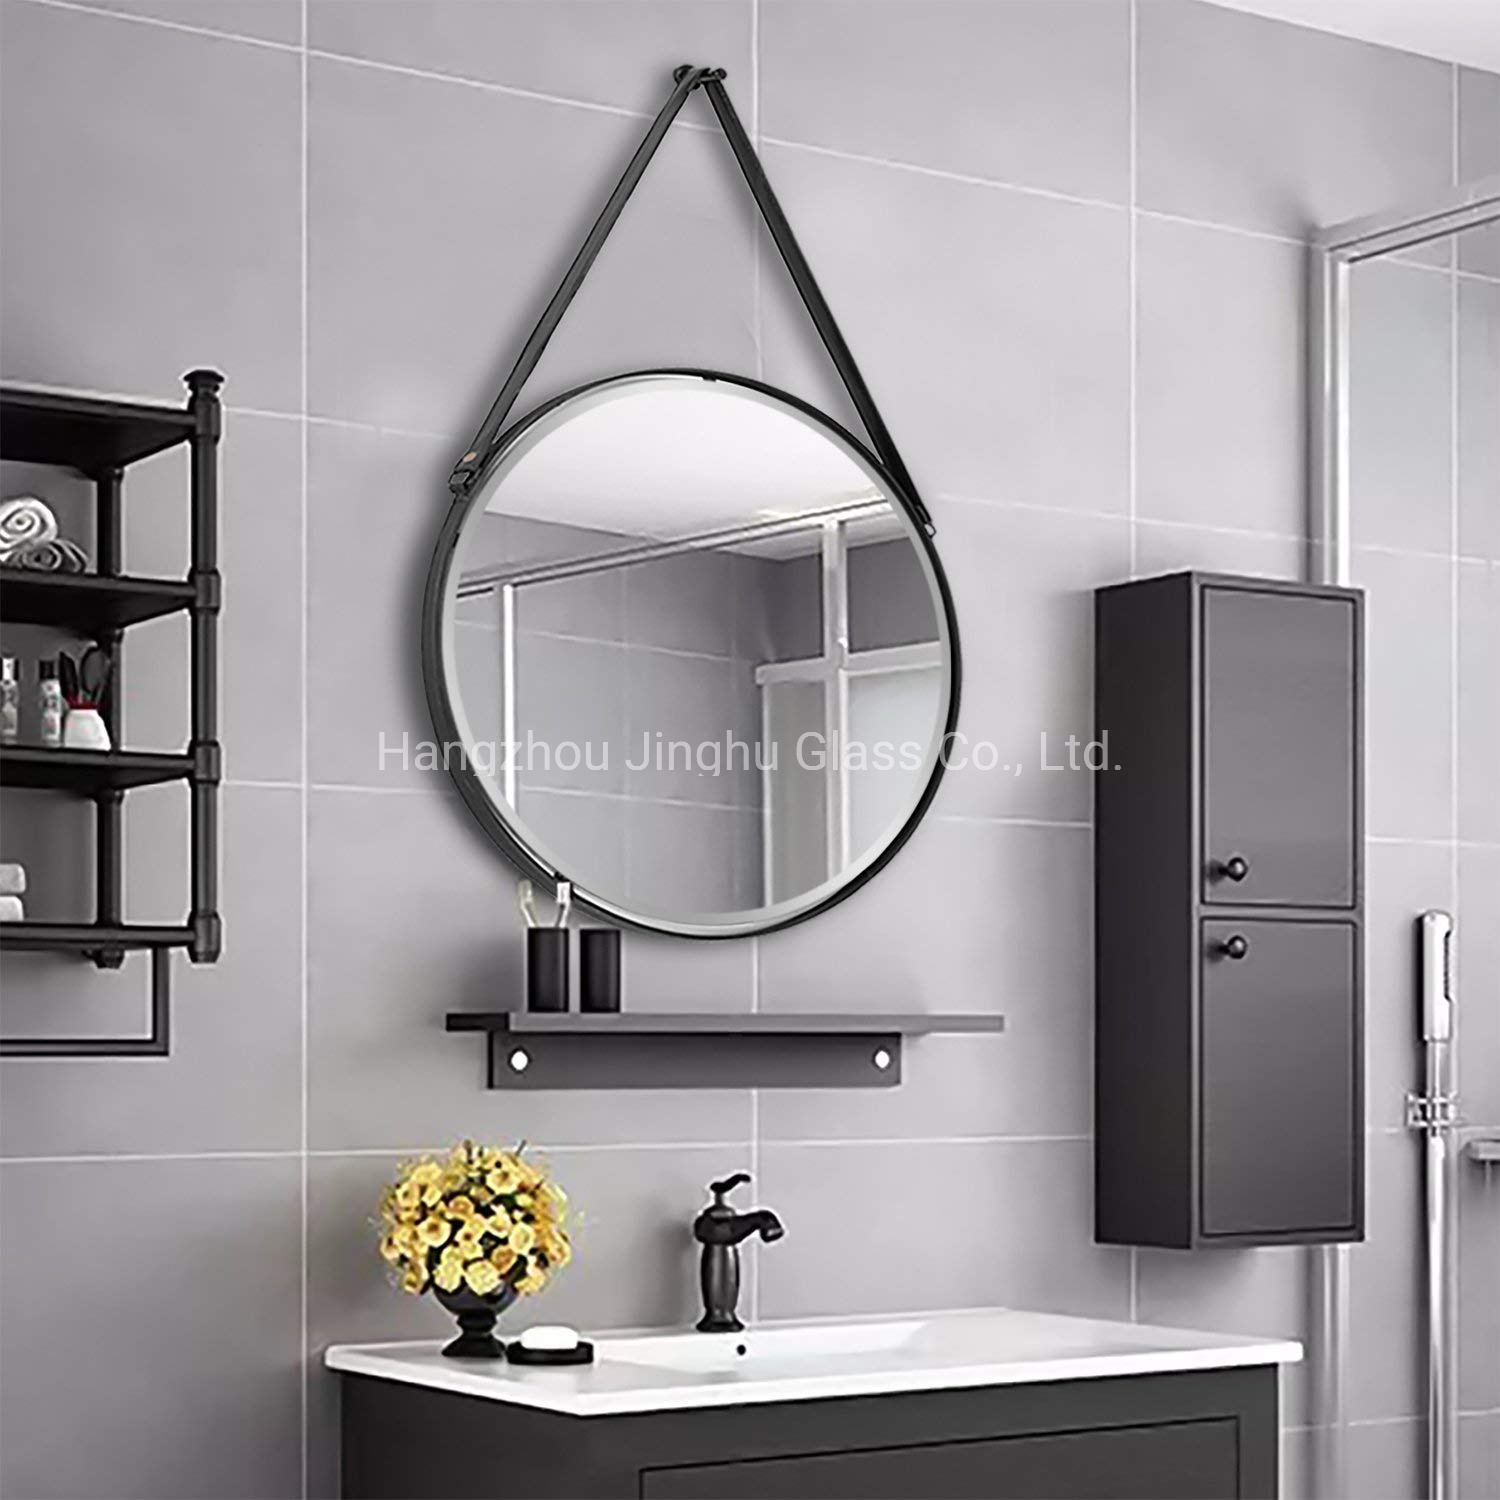 China Wall Mounted Black Color Frame Bathroom Vanity Mirror With Rope Or Leather Belt China Mirror Frame Mirror